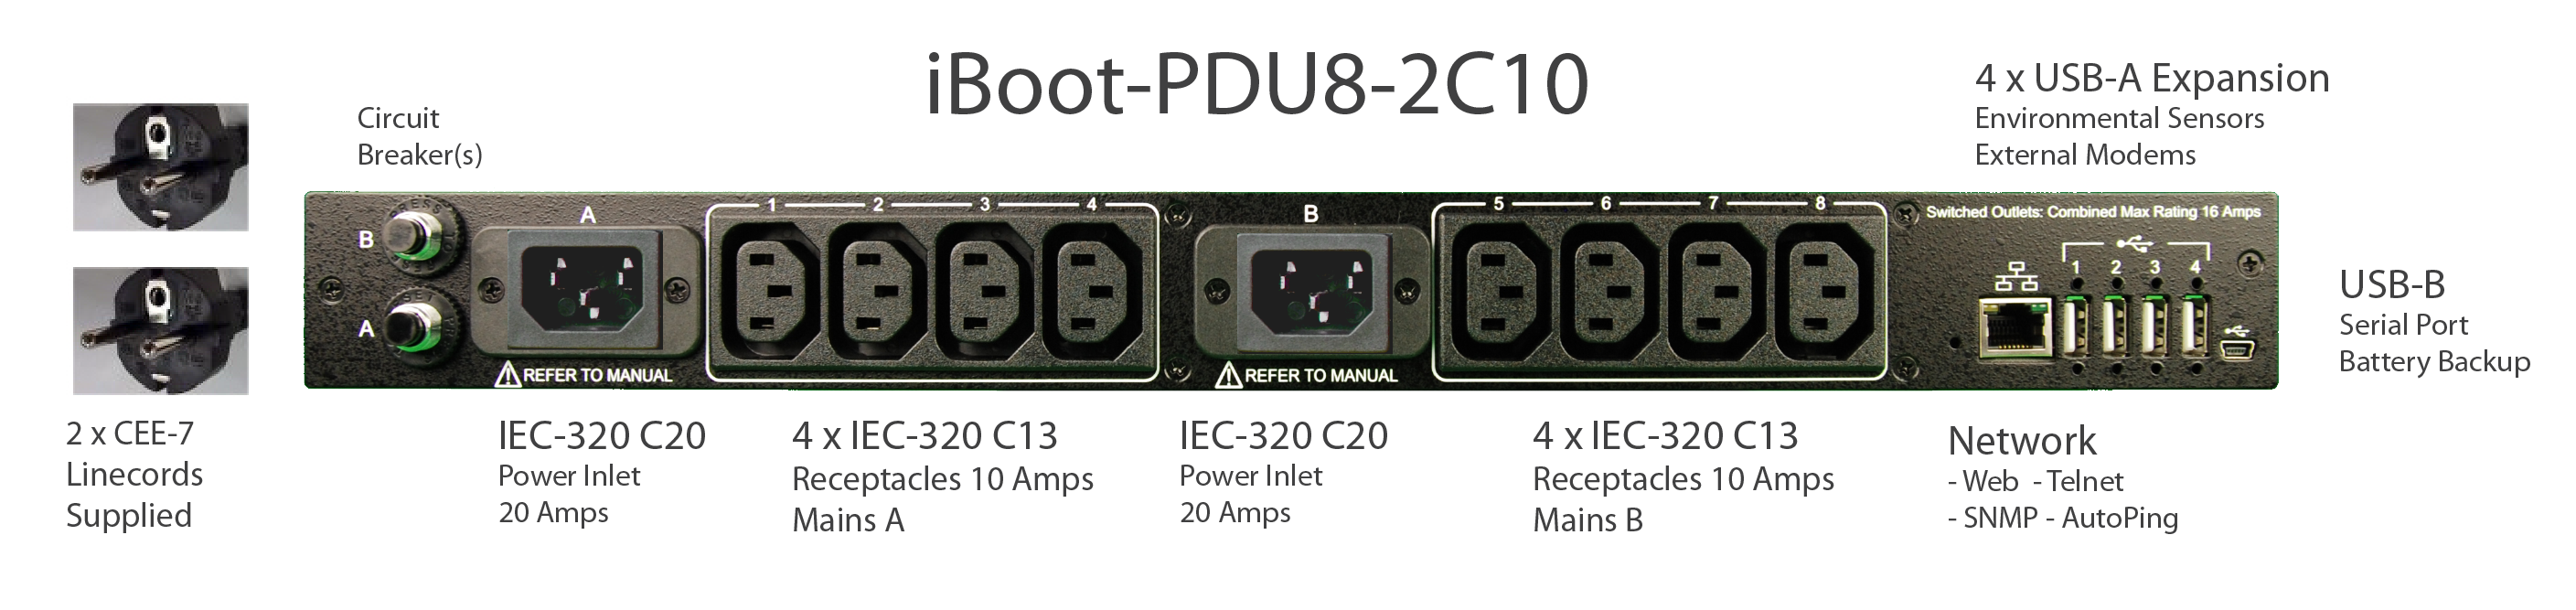 iBoot-PDU8-2C10 for Remote Reboot, 2 x IEC C14 .